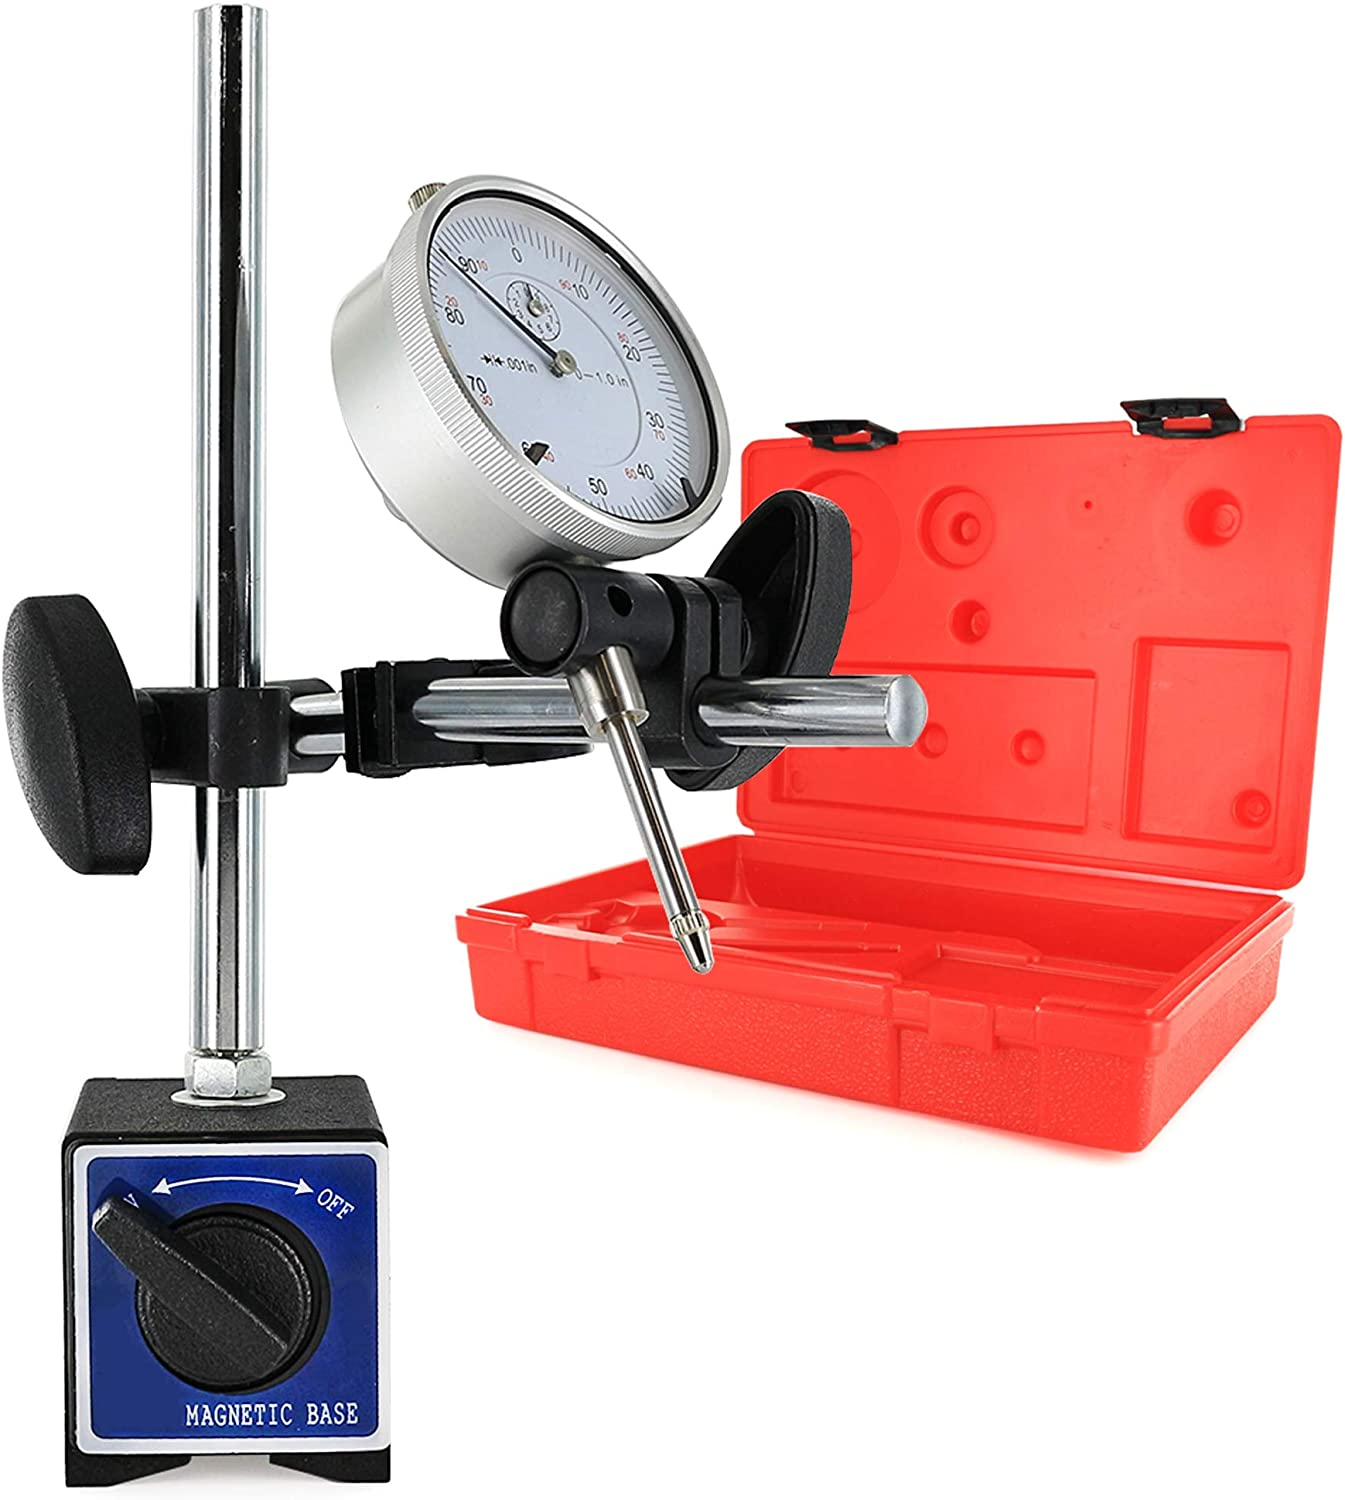 Magnetic Base Holder Stand for Dial Test Indicator Gauge ON//OFF 132 lbs